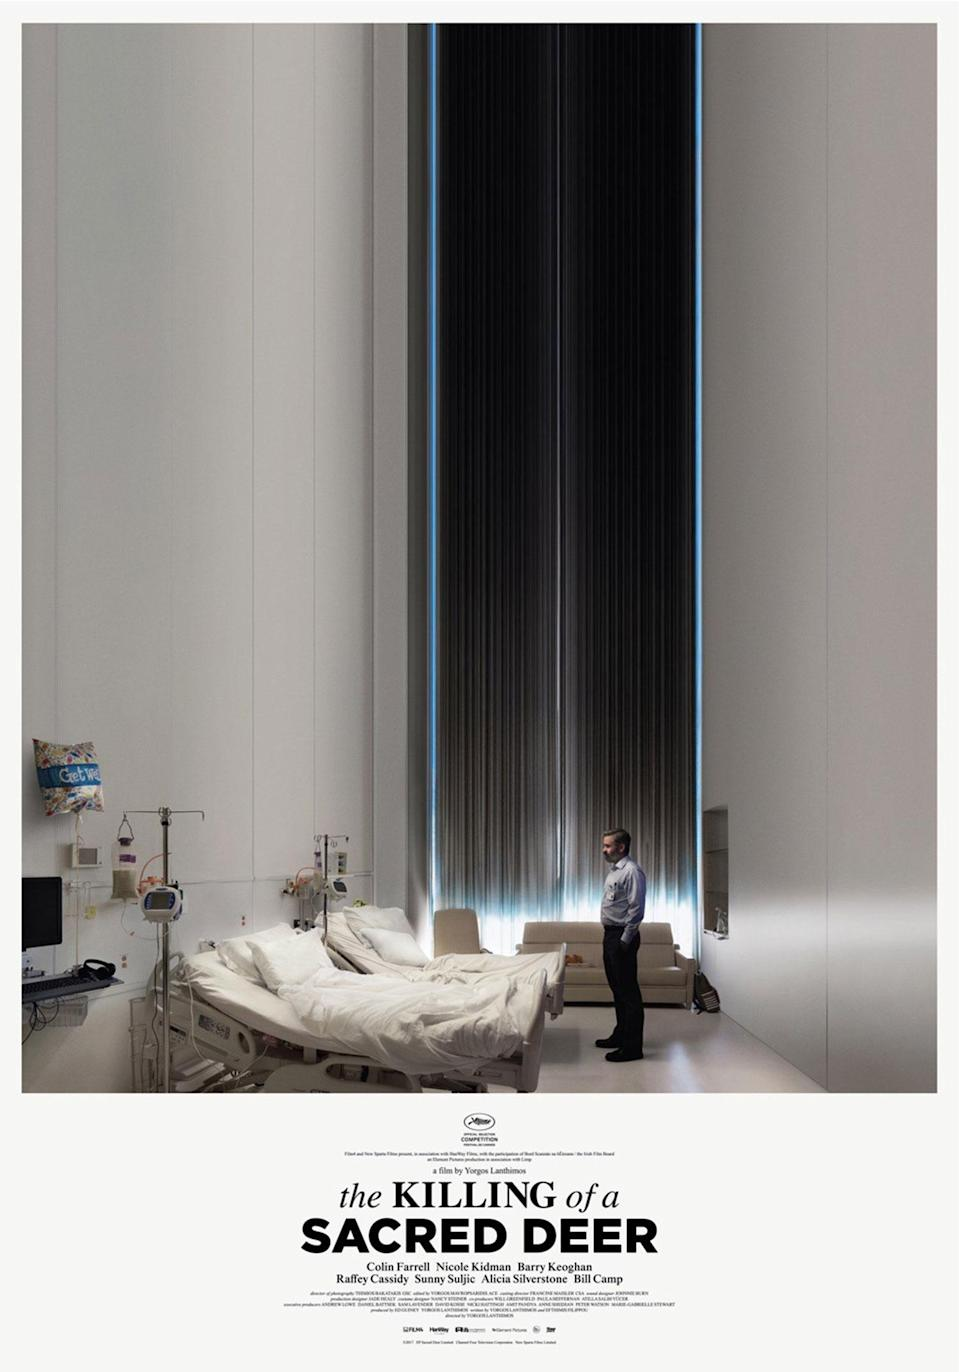 <p>At once both numbingly mundane and freakishly unbalanced, this vertiginous poster for the latest weirdfest from director Yorgos Lanthimos is right on the money – as if hospital rooms weren't already sterile enough. It's the balance between dark and light that hints at something otherworldly and sinister, and it's another winner from Lanthimos and Farrell – 2015's poster for 'The Lobster' was also brilliant. </p>